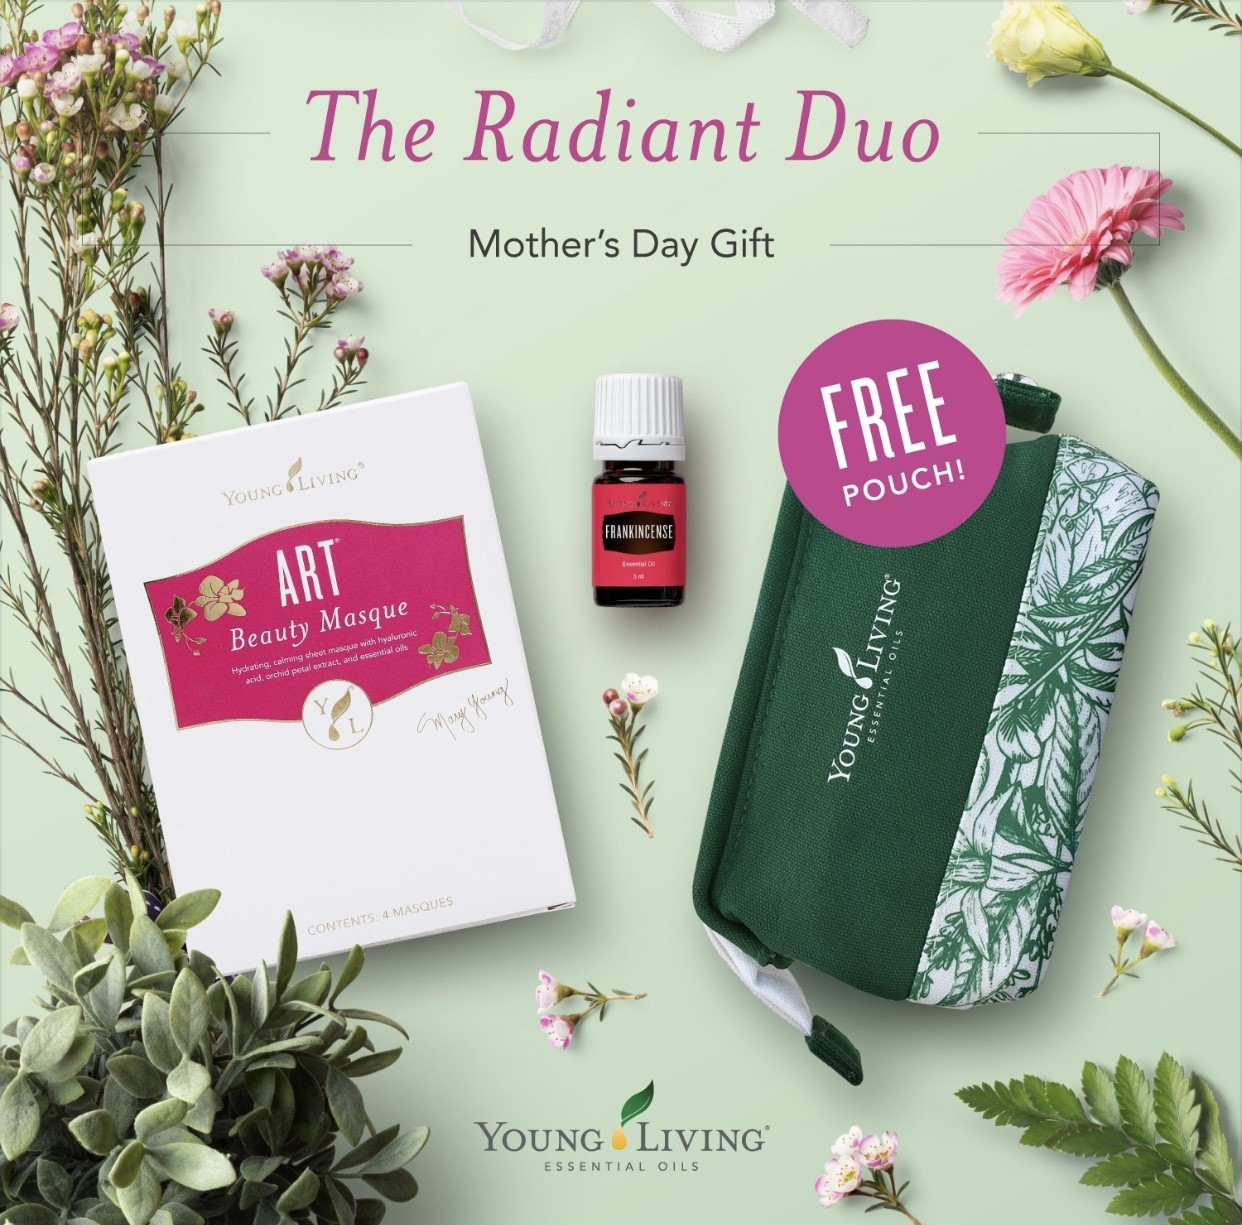 Mothers Day Radiant Duo Pack with FREE POUCH